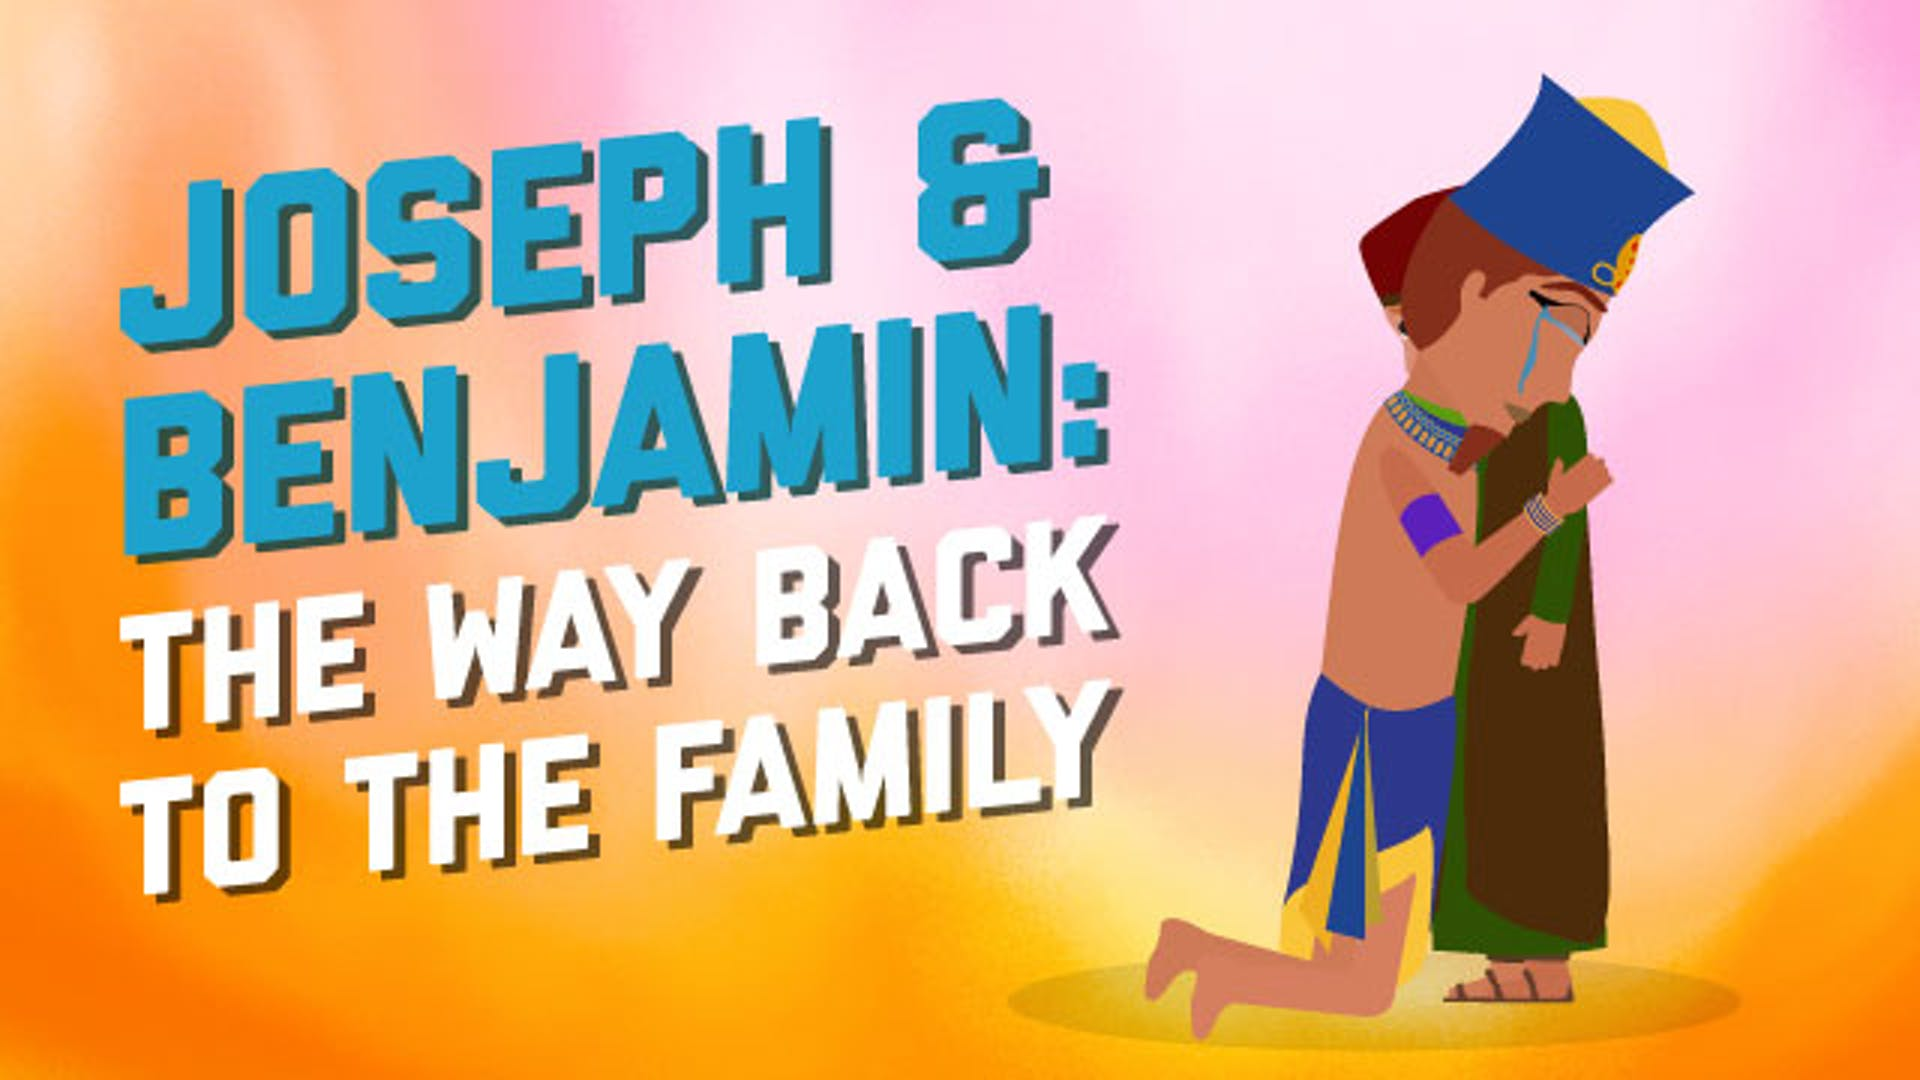 Joseph saves family Benjamin brothers